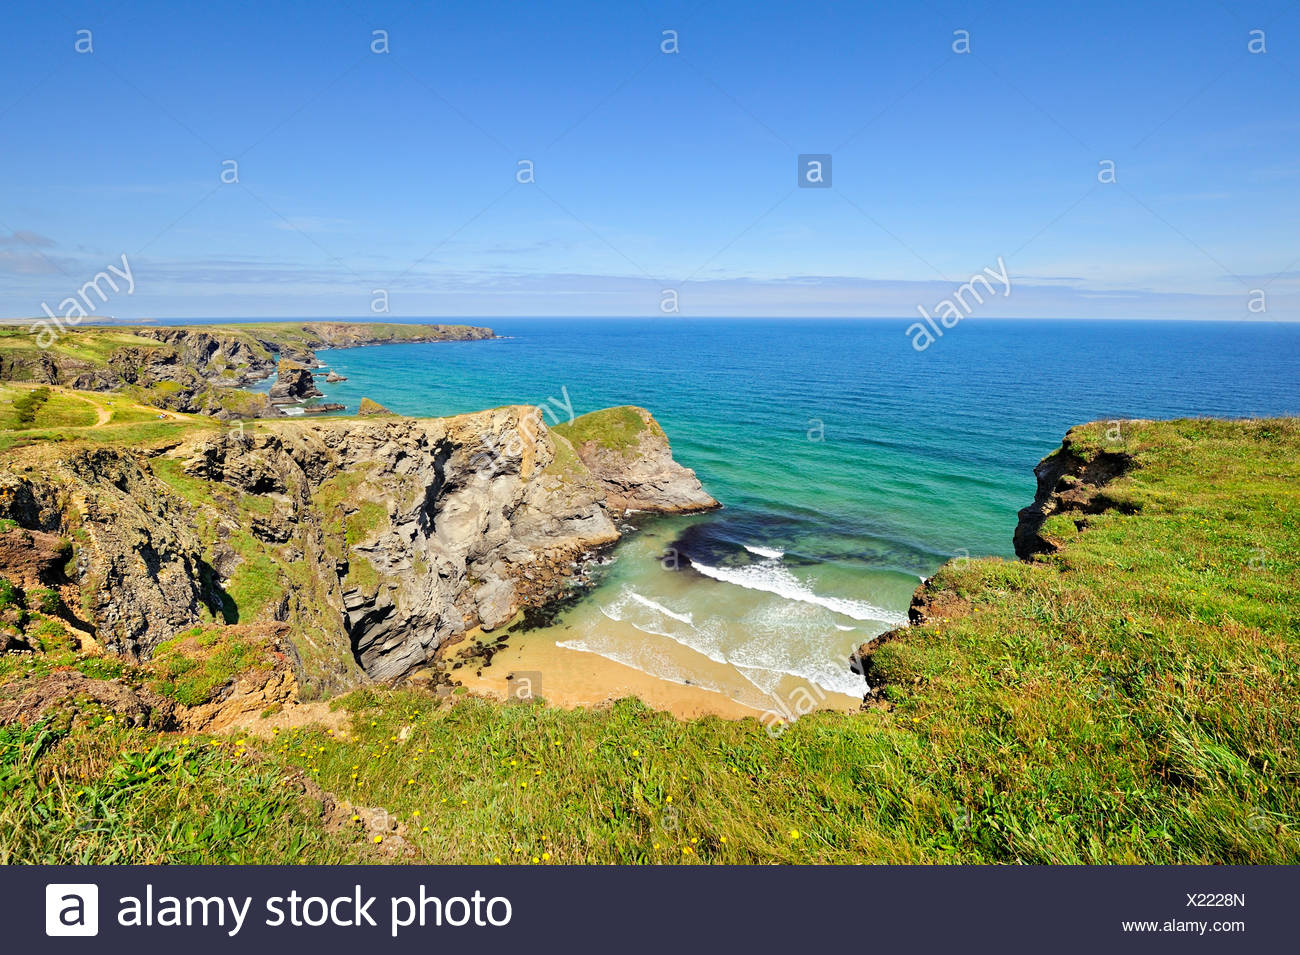 Coastal landscape with bay in Newquay on the north coast of Cornwall, England, United Kingdom, Europe - Stock Image